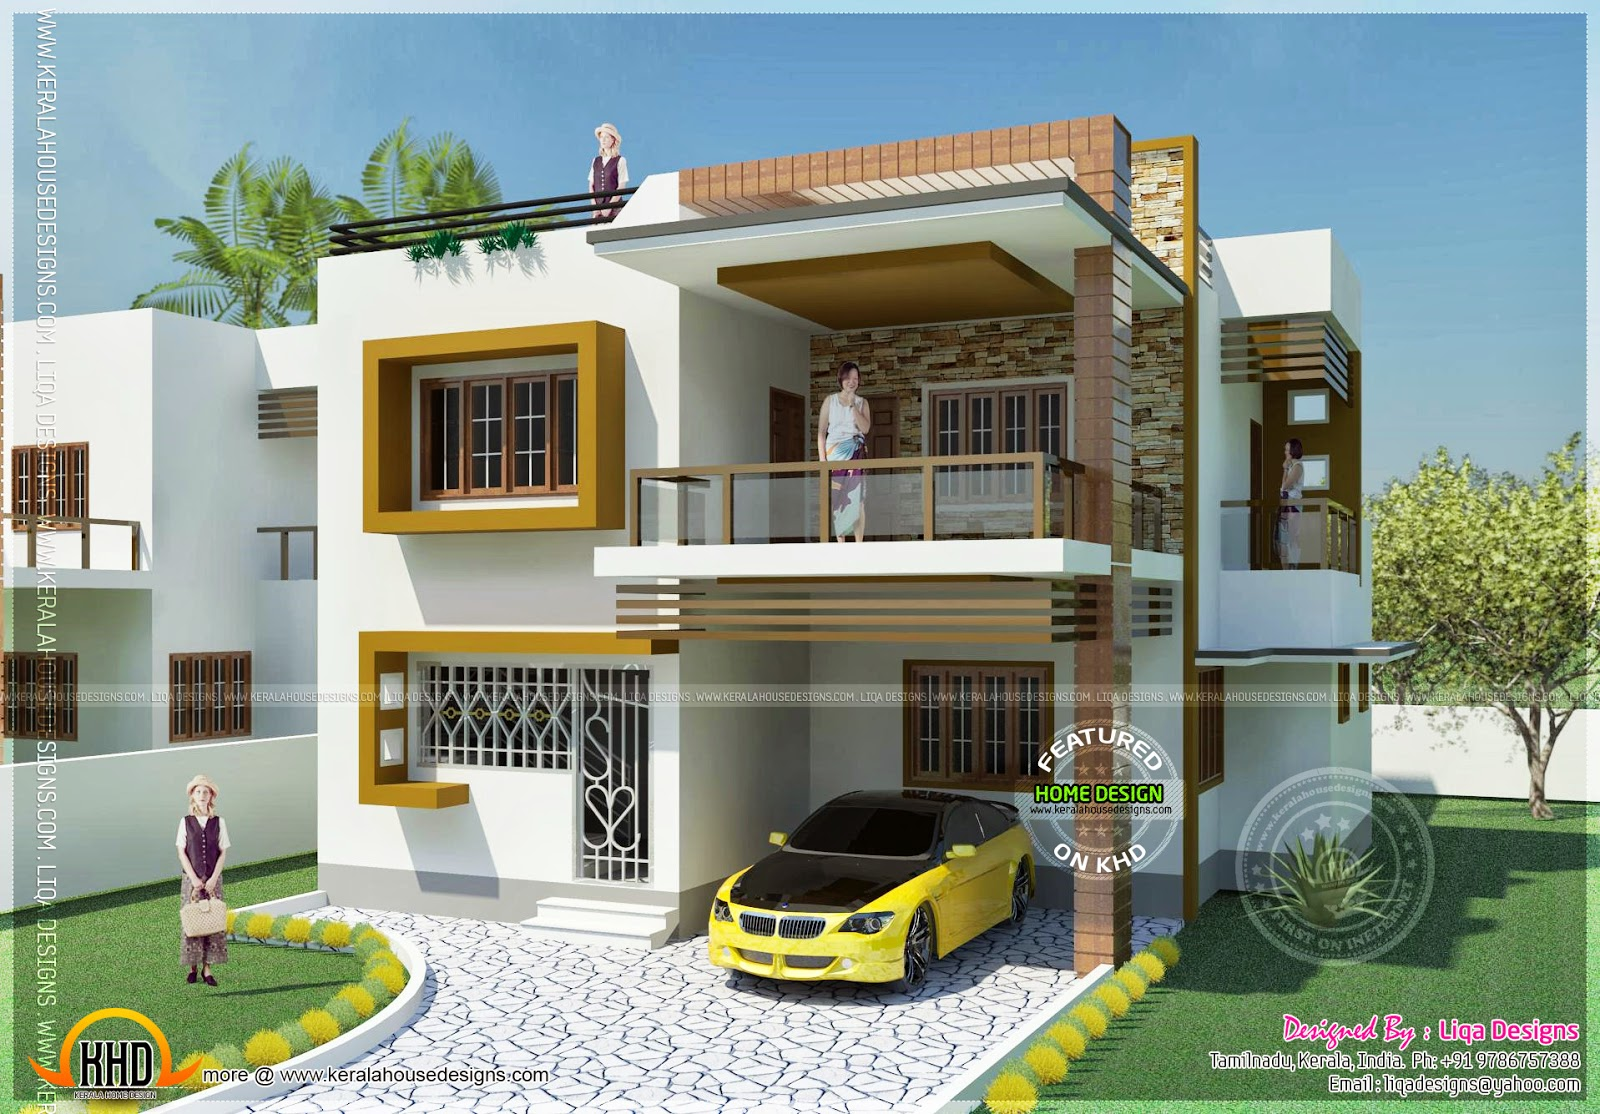 Double storied tamilnadu house design kerala home design for Tamilnadu house models